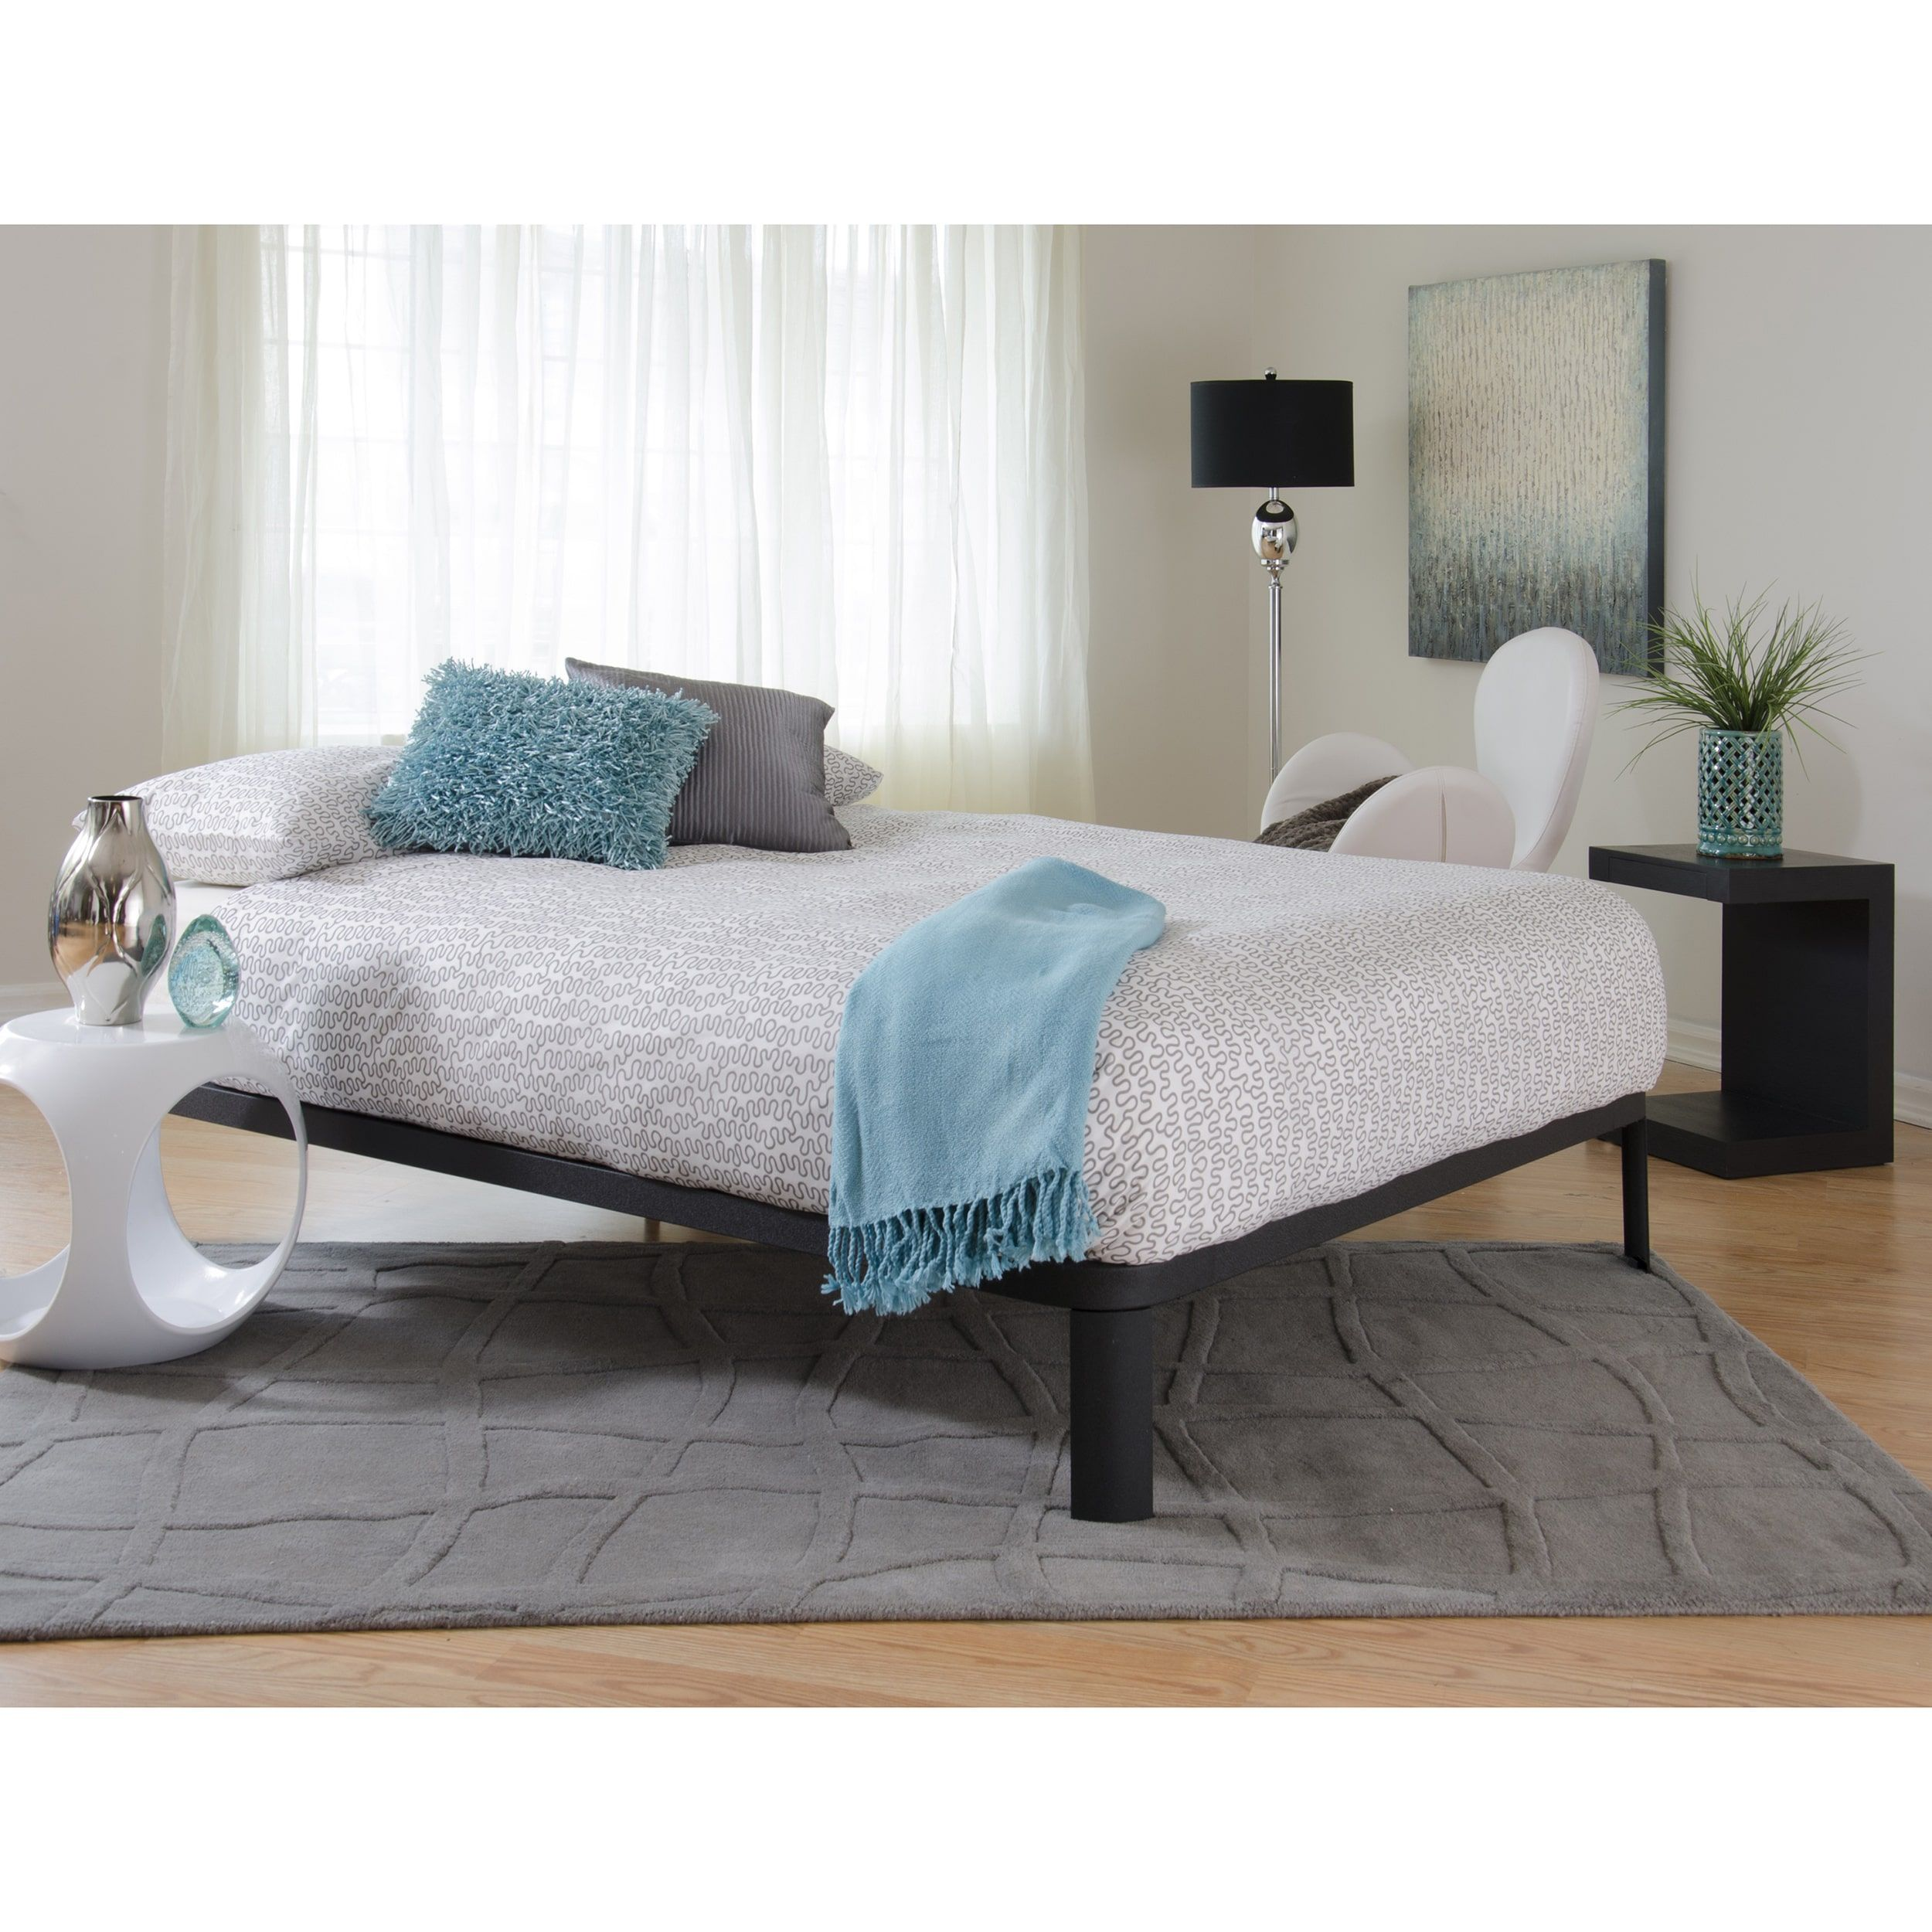 Motif Design Lunar Deluxe Black Platform Bed (Full/Double)